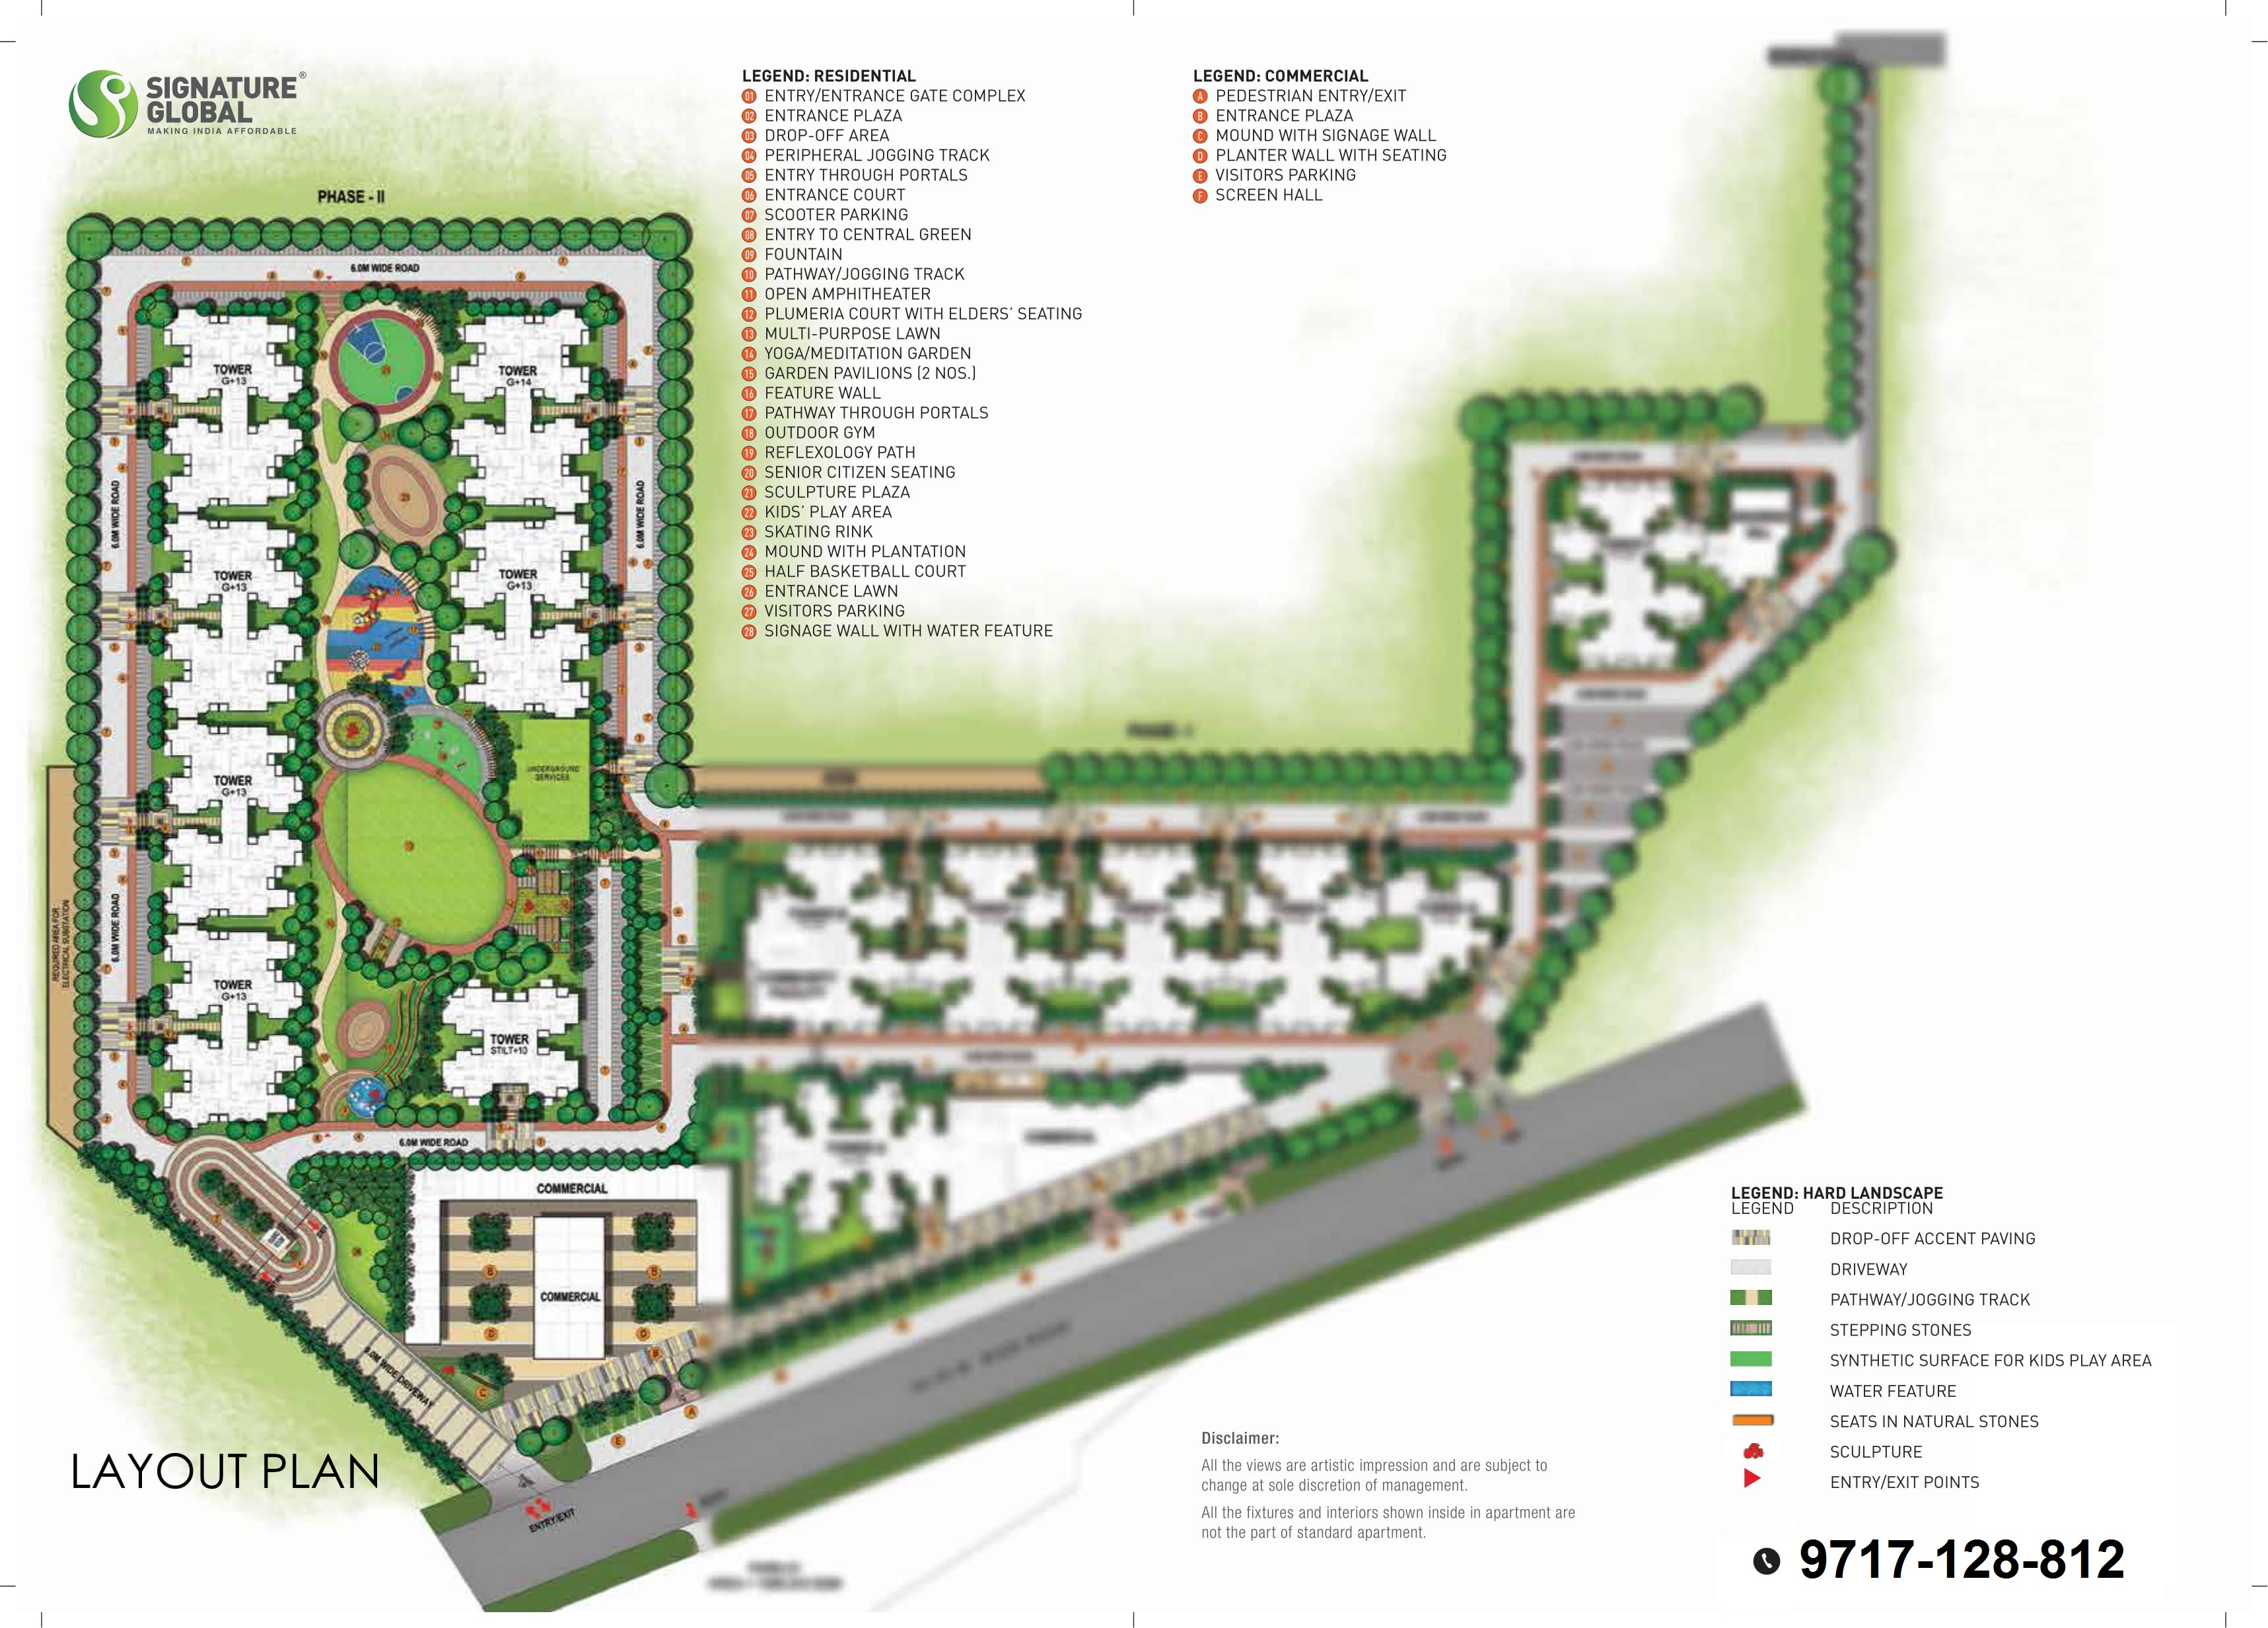 Signature Orchard Avenue 2 Layout Plan